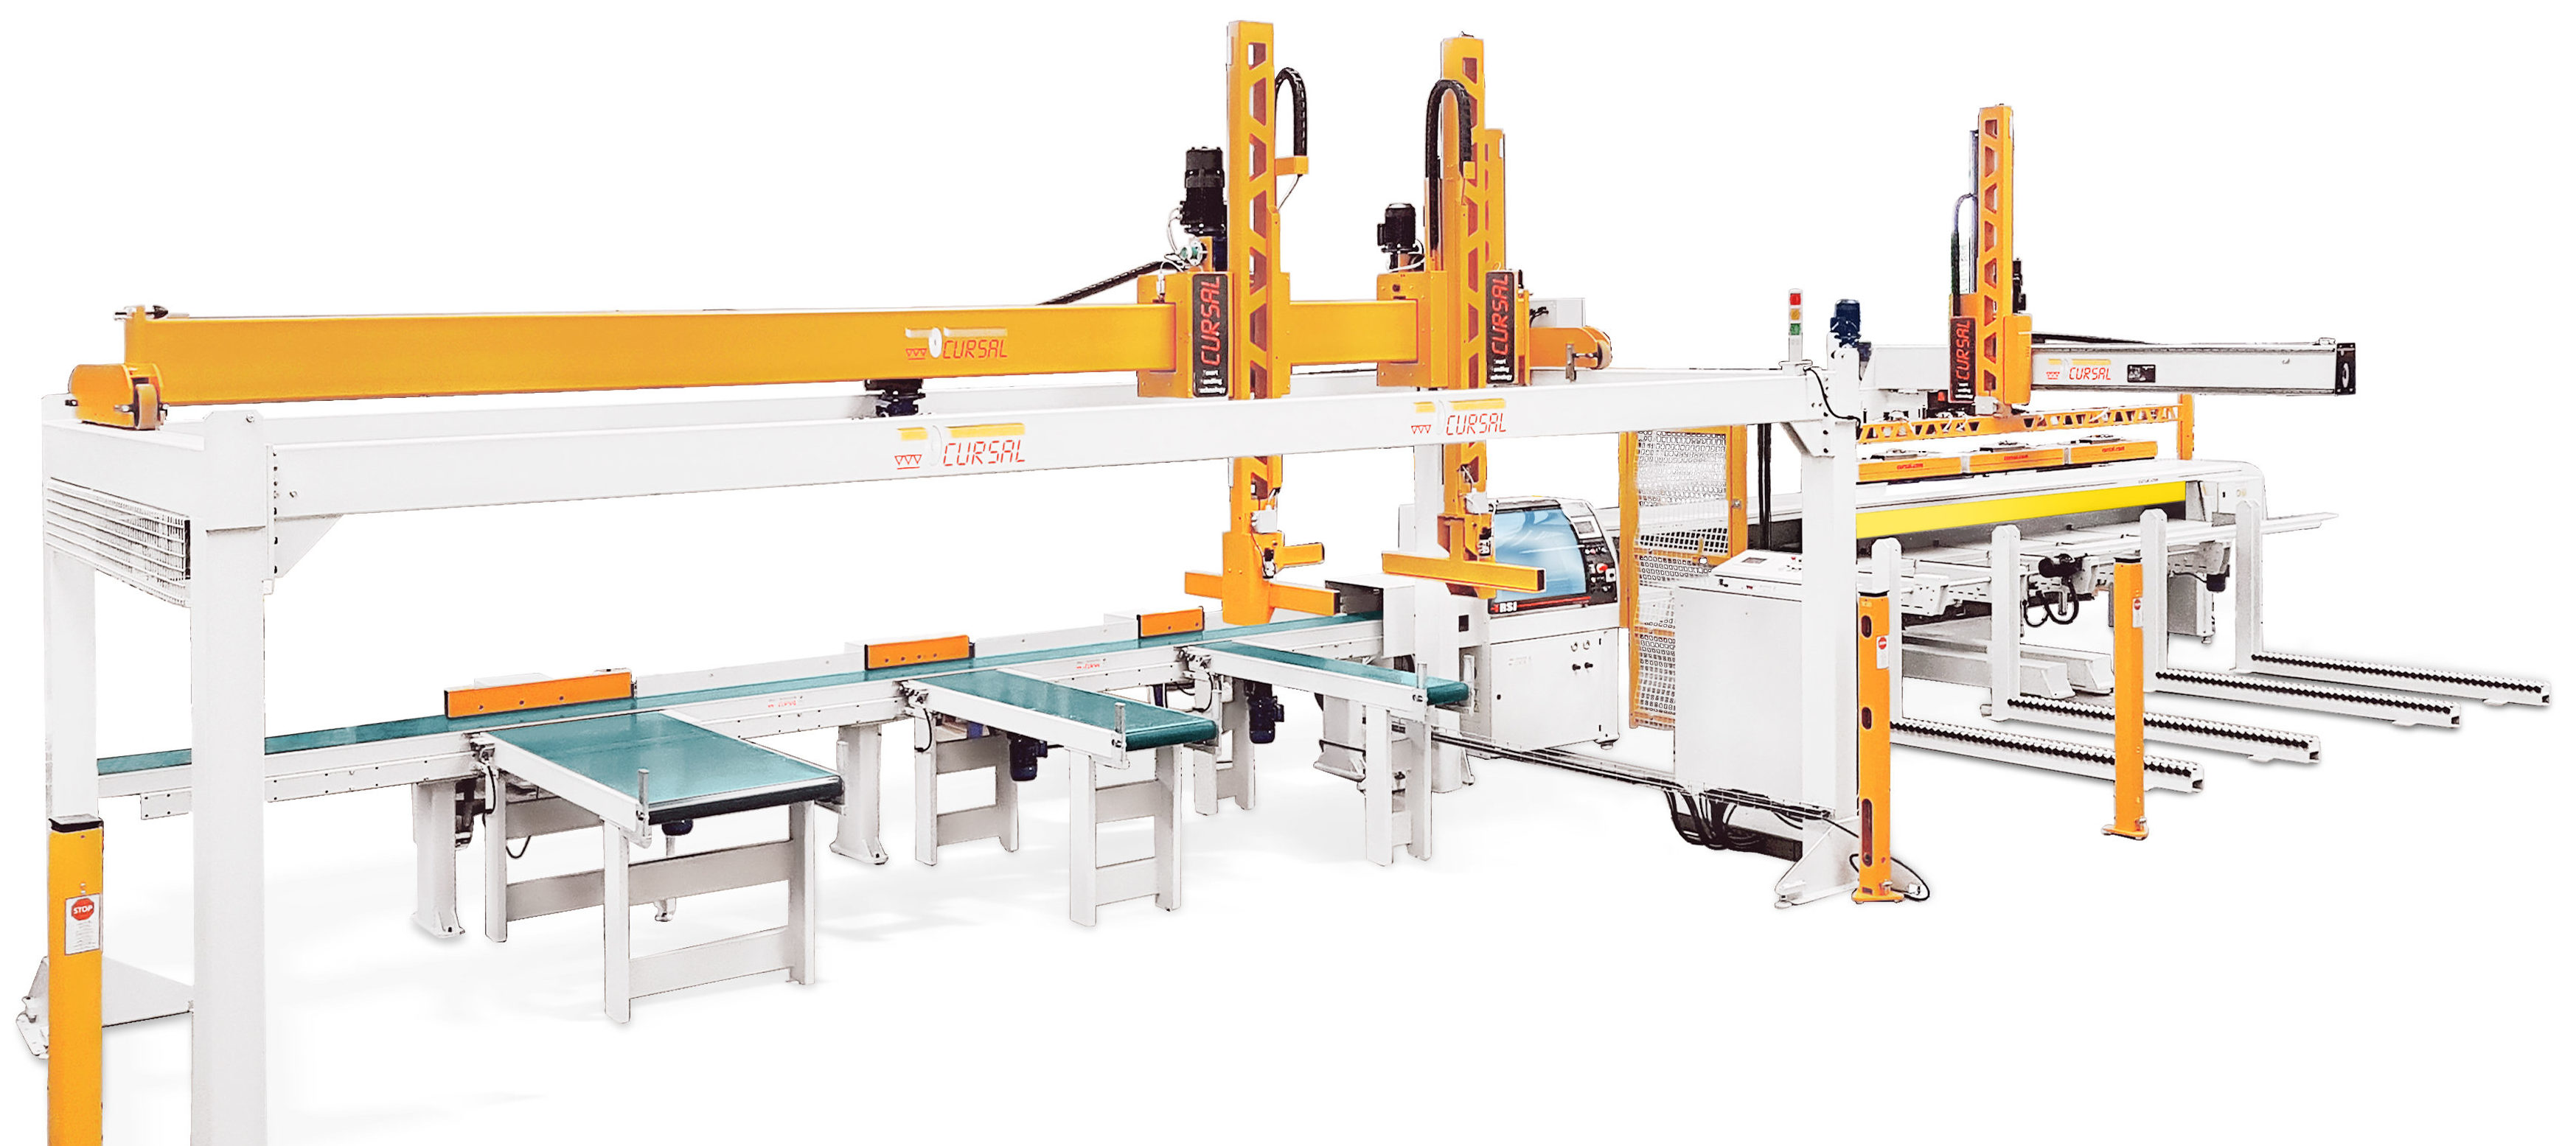 Cursal woodworking machinery